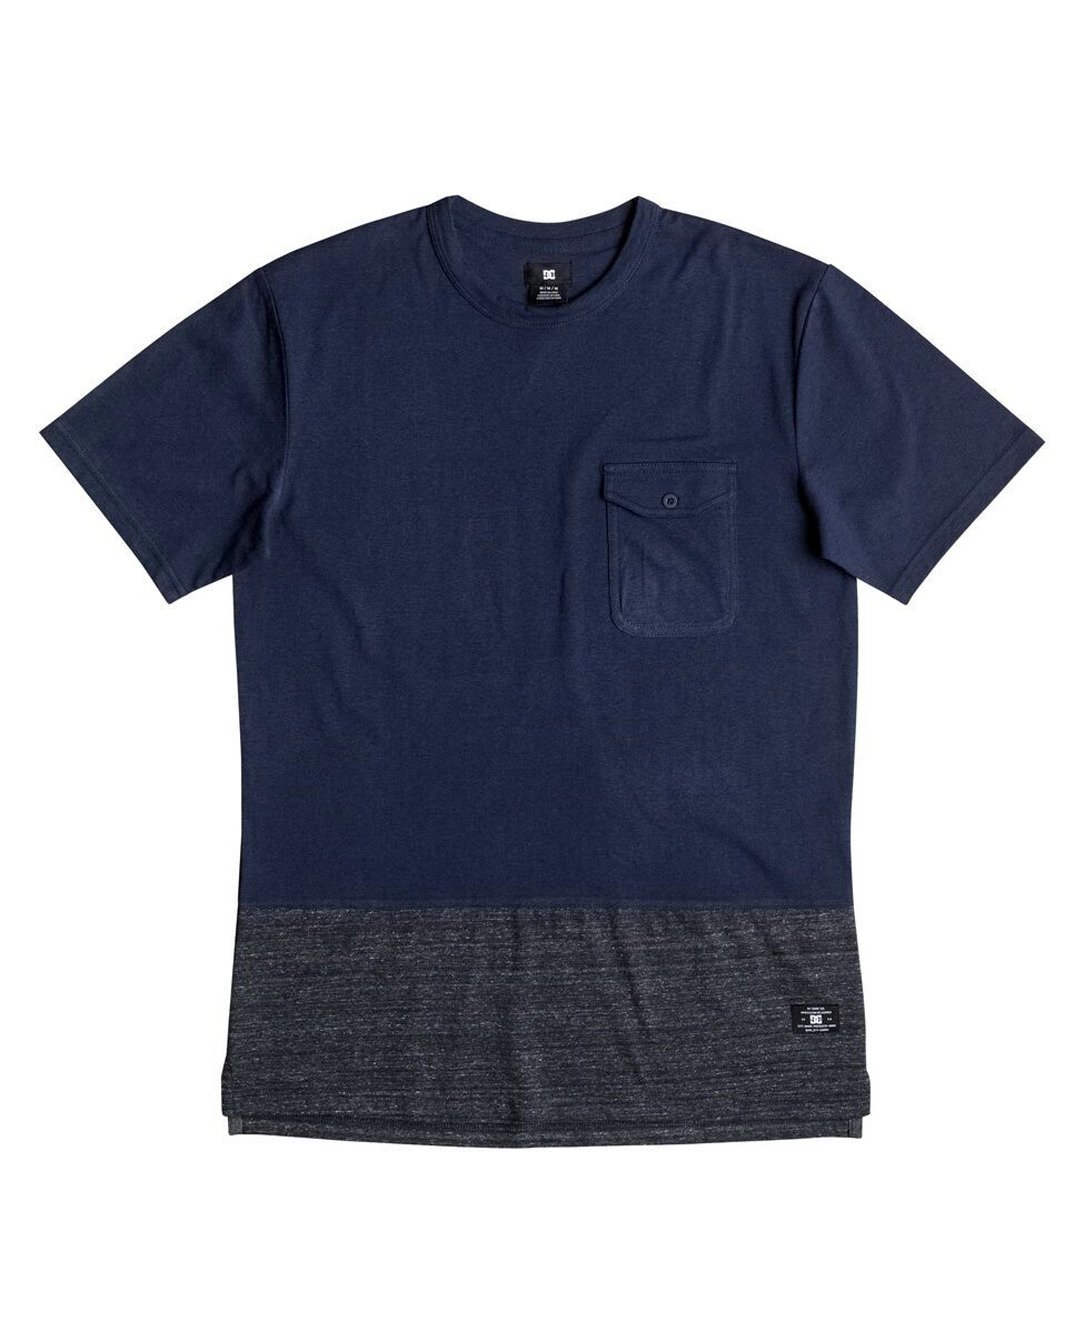 DC SHOES TSHIRT ENDERLIN BYJ0